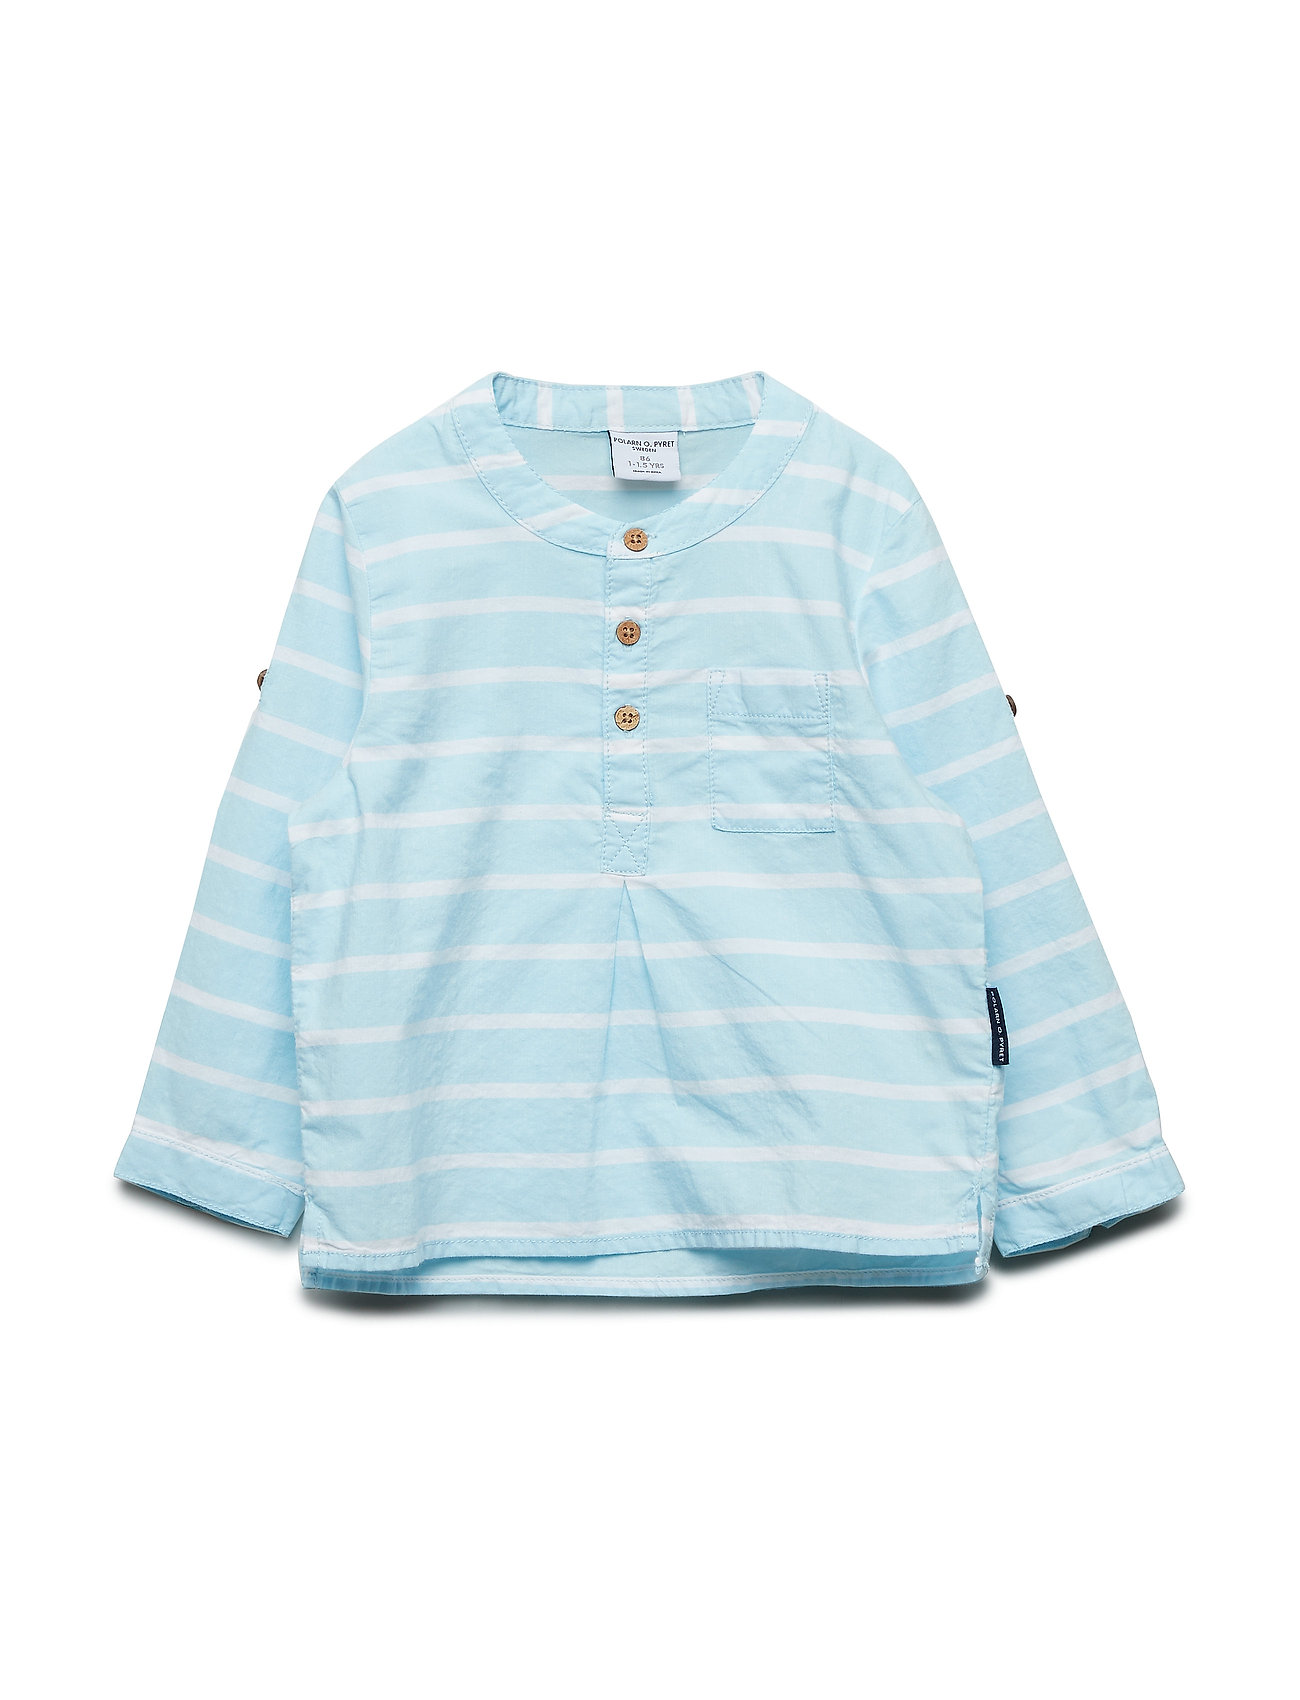 Polarn O. Pyret Shirt L/S woven   Preschool - COOL BLUE